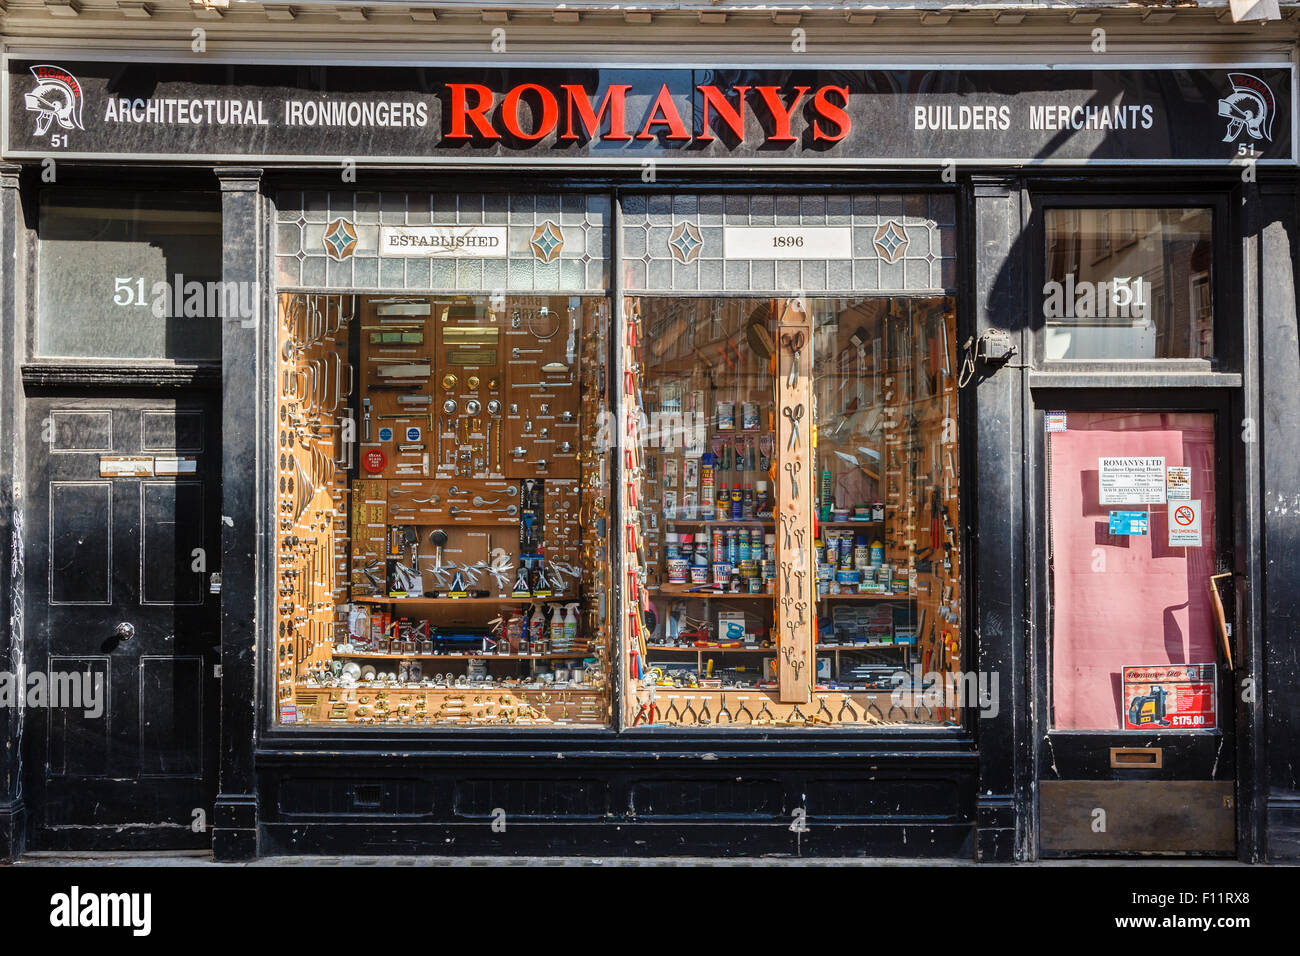 Romanys Architectural Ironmongers and Builders Merchants at 51 Brewer Street, Soho, London. - Stock Image